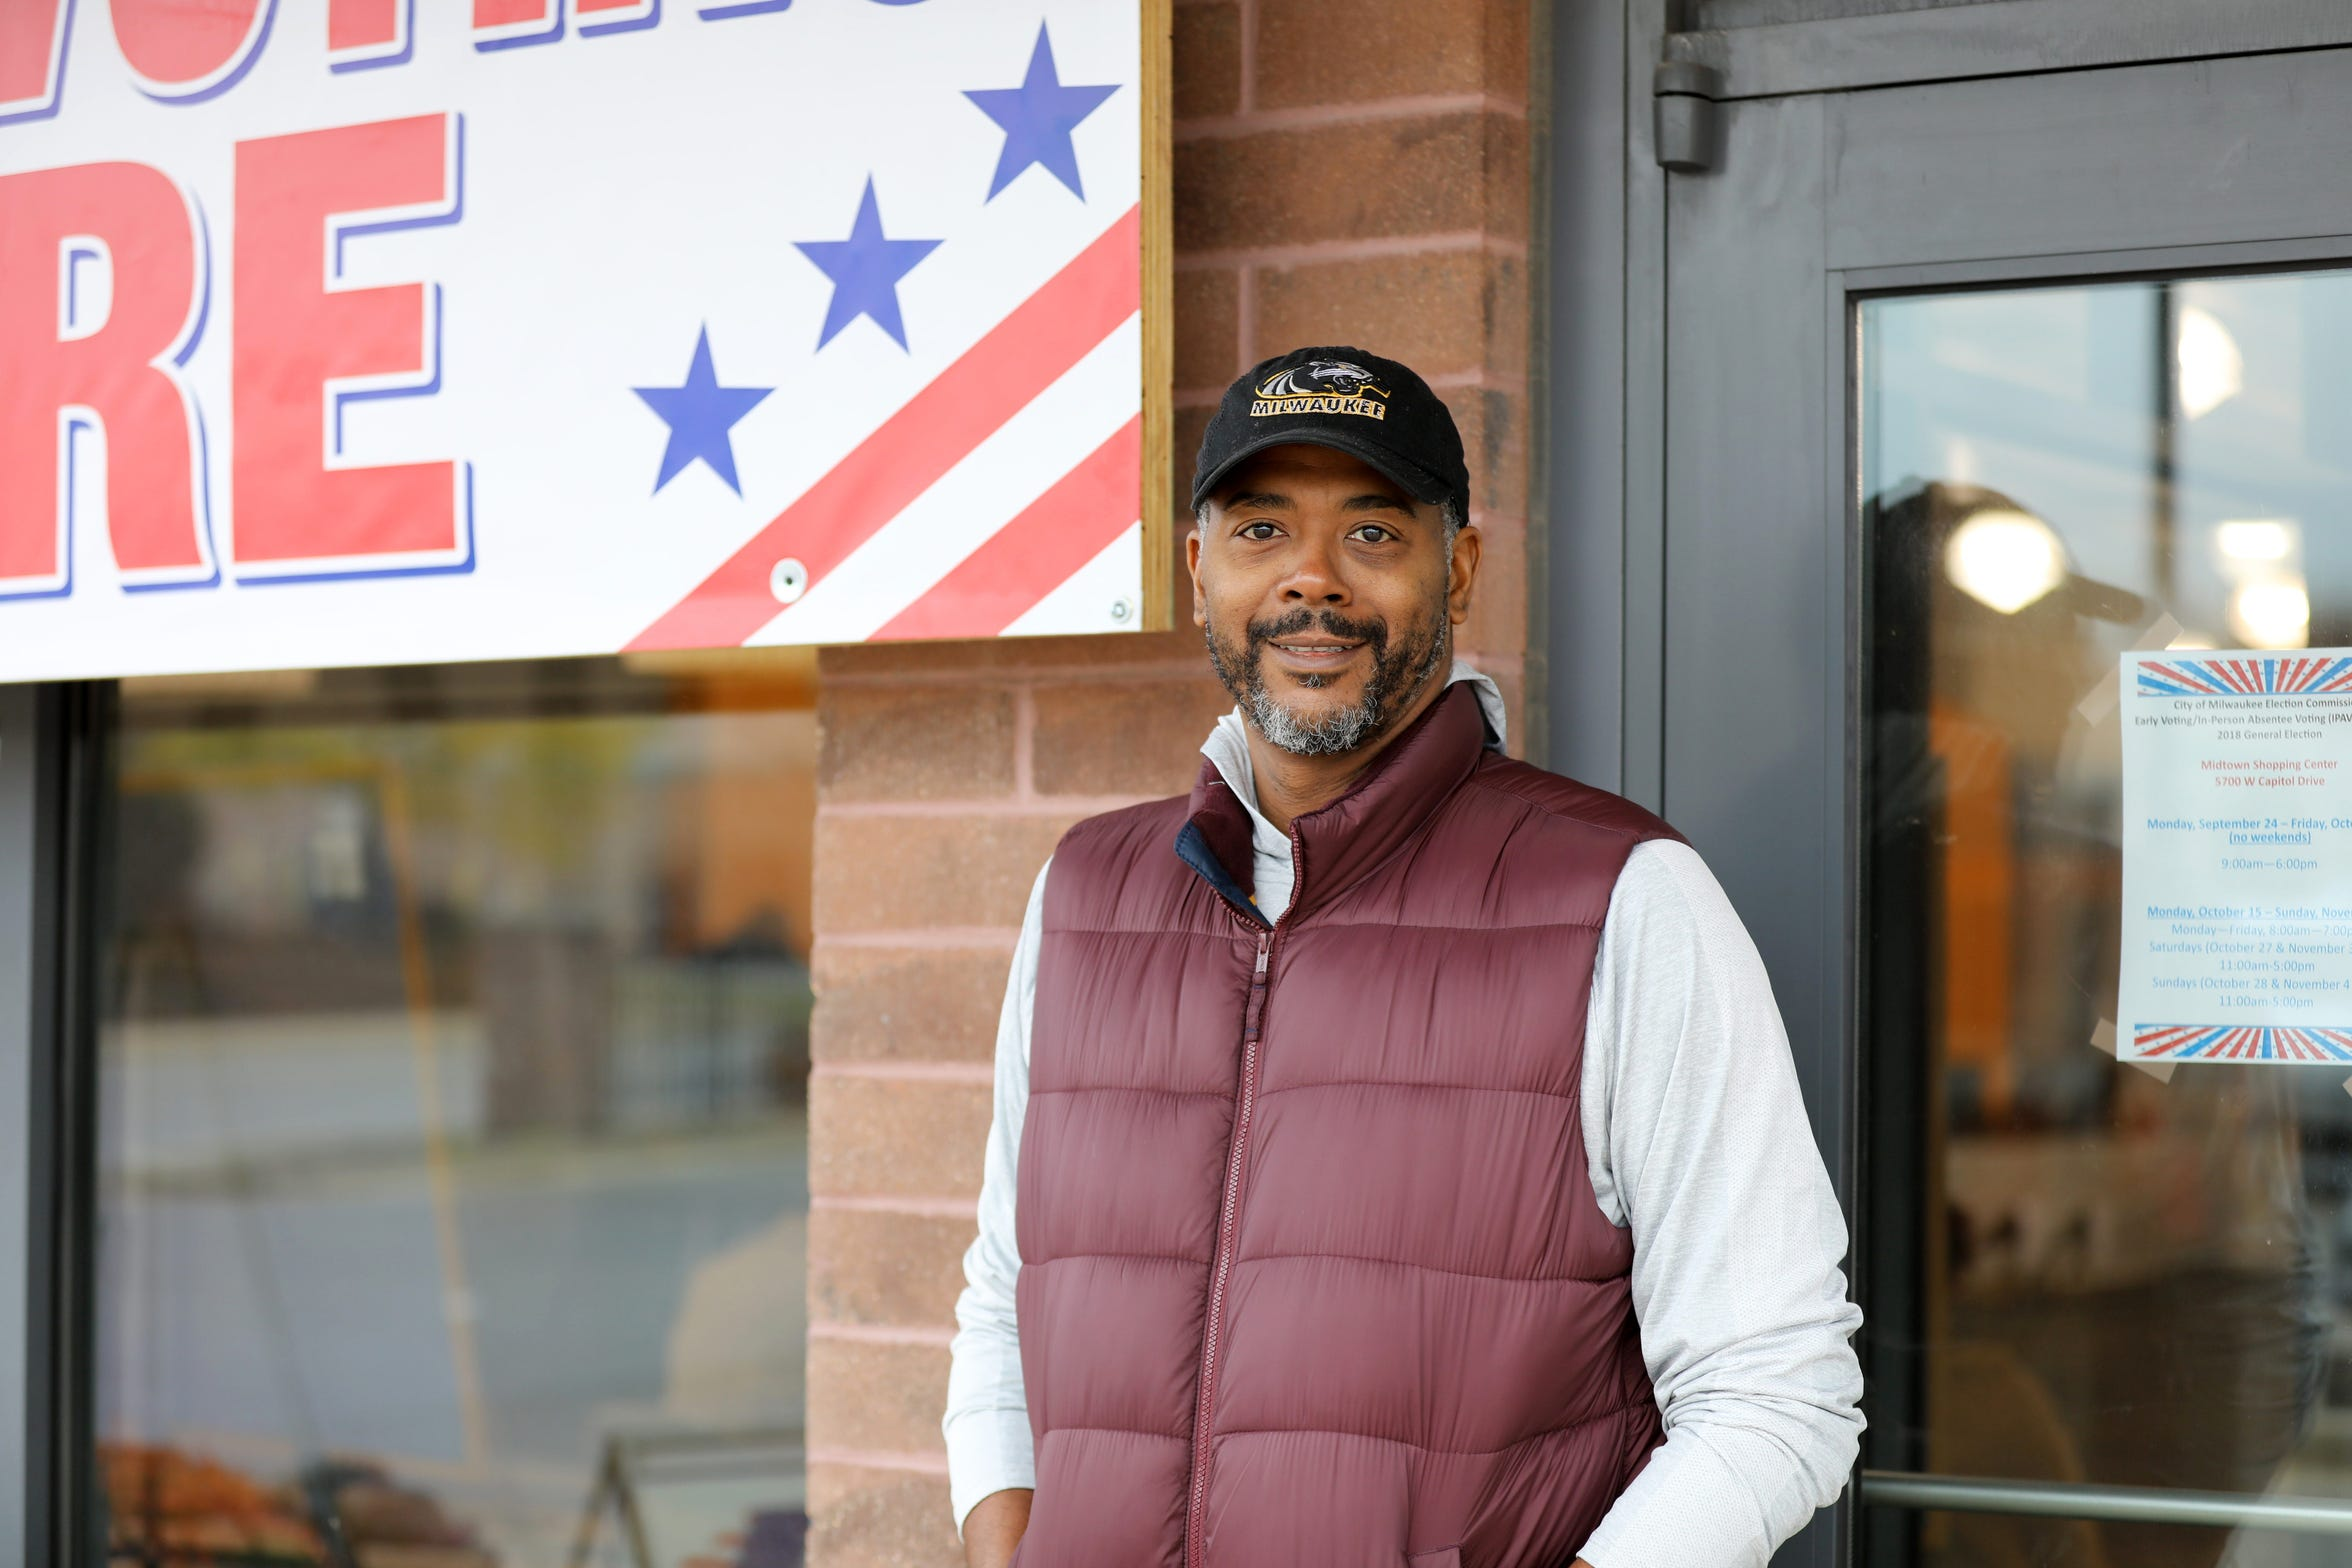 Racial equity is the biggest reason Milwaukee resident Marlon Rockett supports marijuana legalization. Milwaukee County's non-binding marijuana legalization referendum motivated Rockett to cast an early ballot in the 2018 midterms. In 2018, blacks were four times as likely to be arrested for marijuana possession in Wisconsin as whites, statistics show. Rockett is seen outside of an early voting location at Midtown Shopping Center in Milwaukee on Oct. 28.